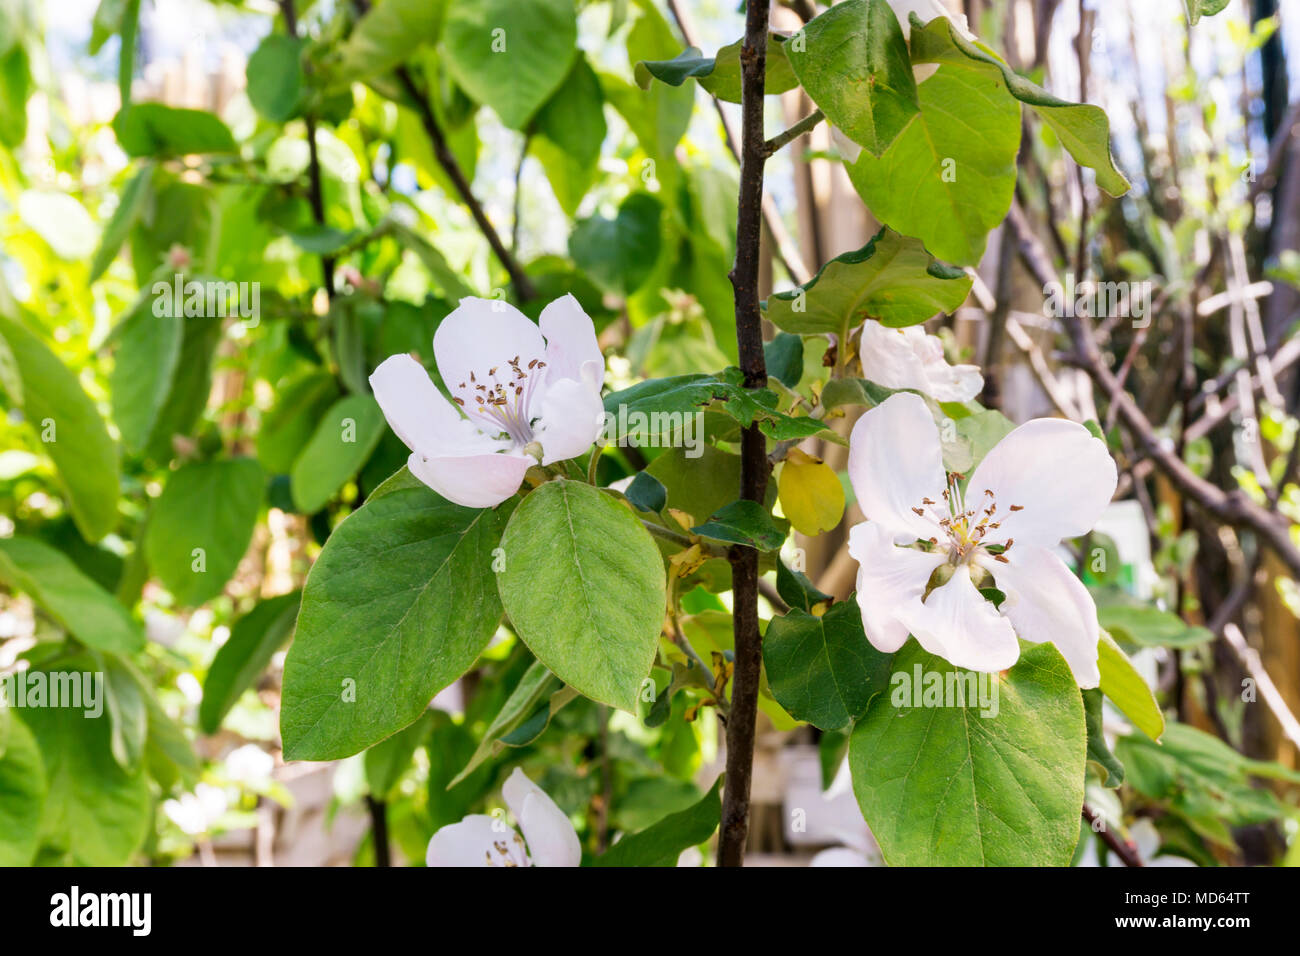 Flowers of the quince tree, Cydonia oblonga 'Champion'. - Stock Image